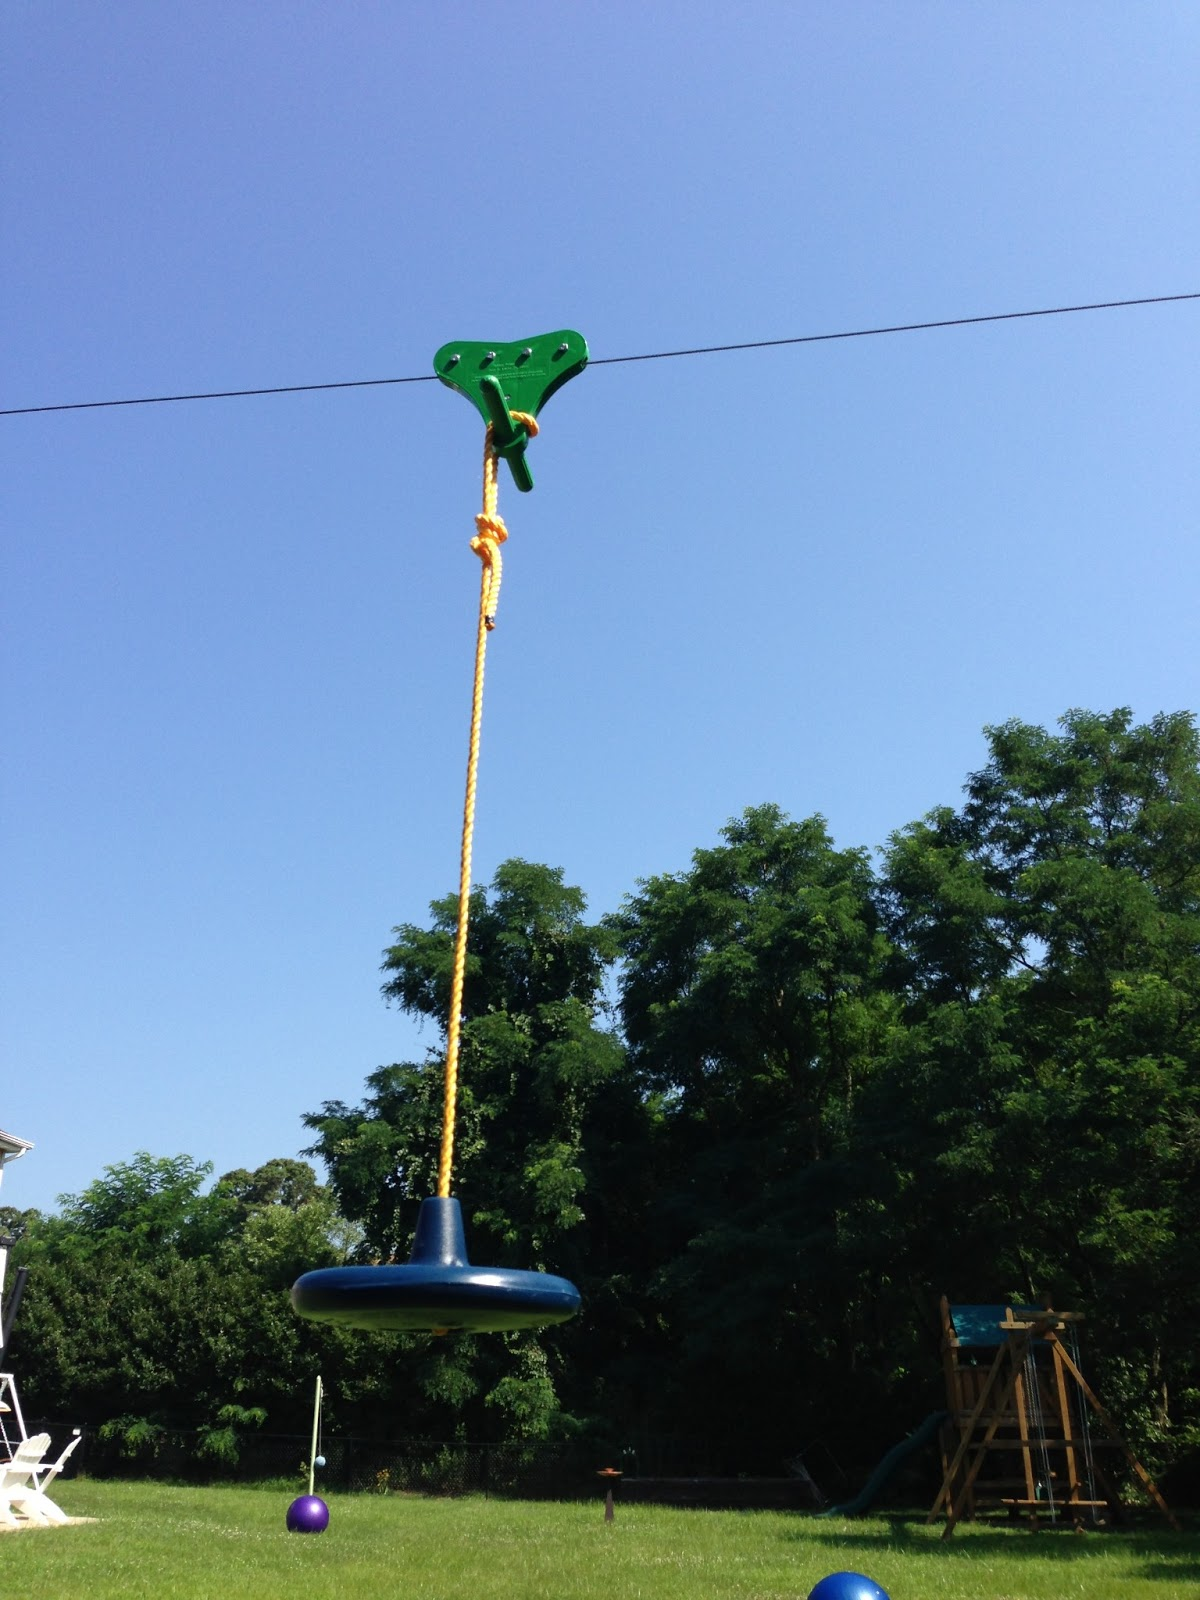 Backyard Zip Line: Zip-Line Build Pics: posts, chain, seat ...